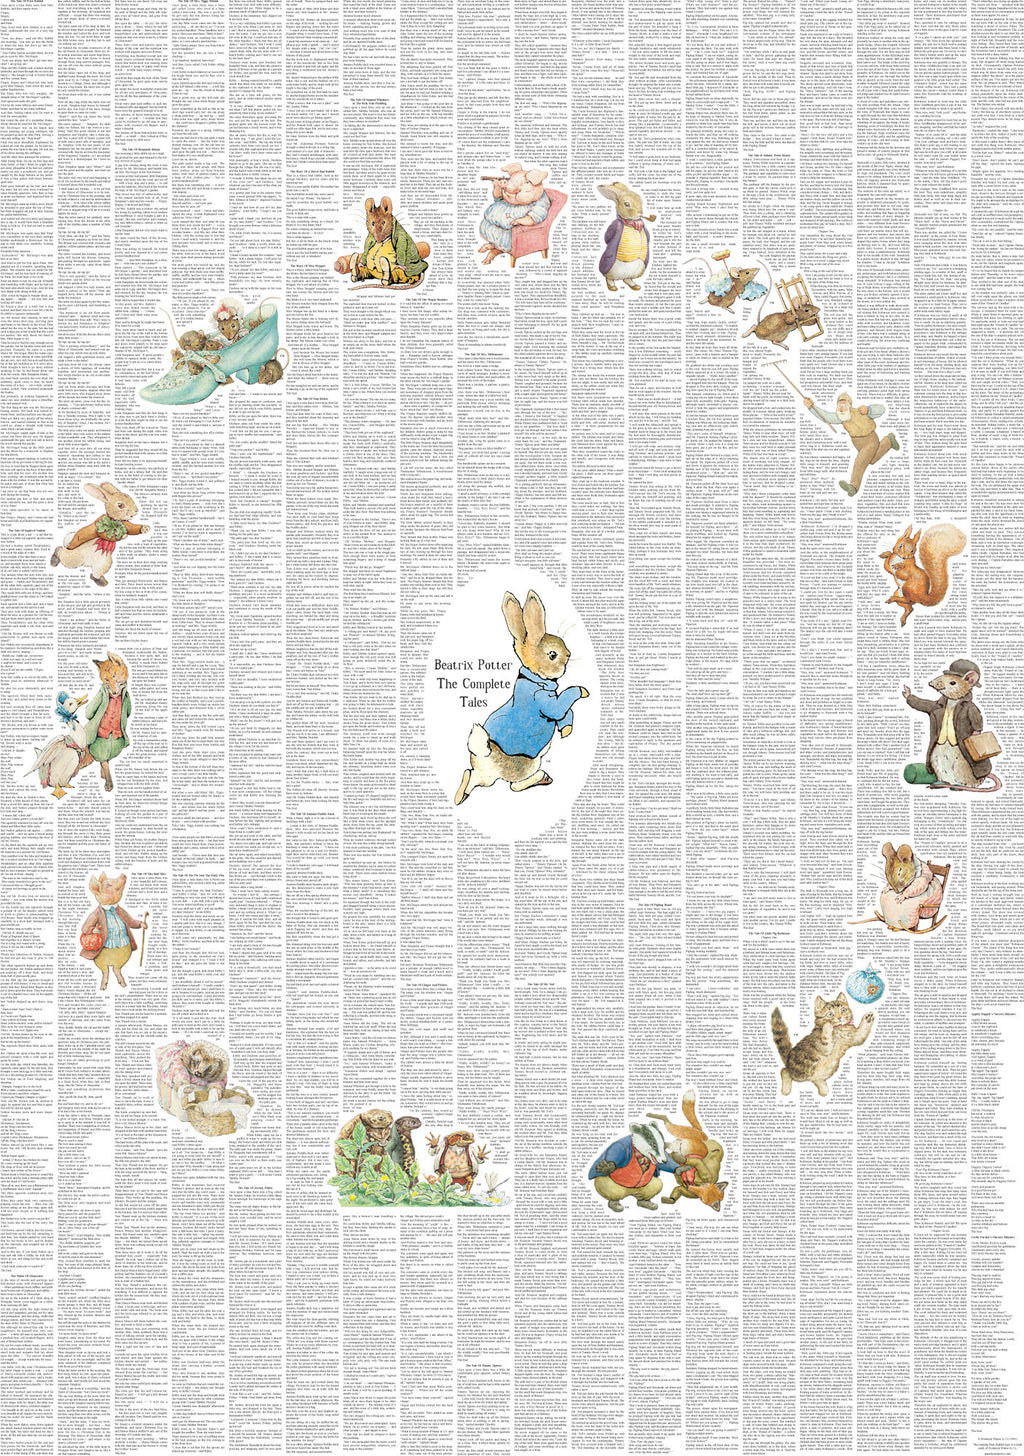 The Complete Peter Rabbit and Friends illustrated